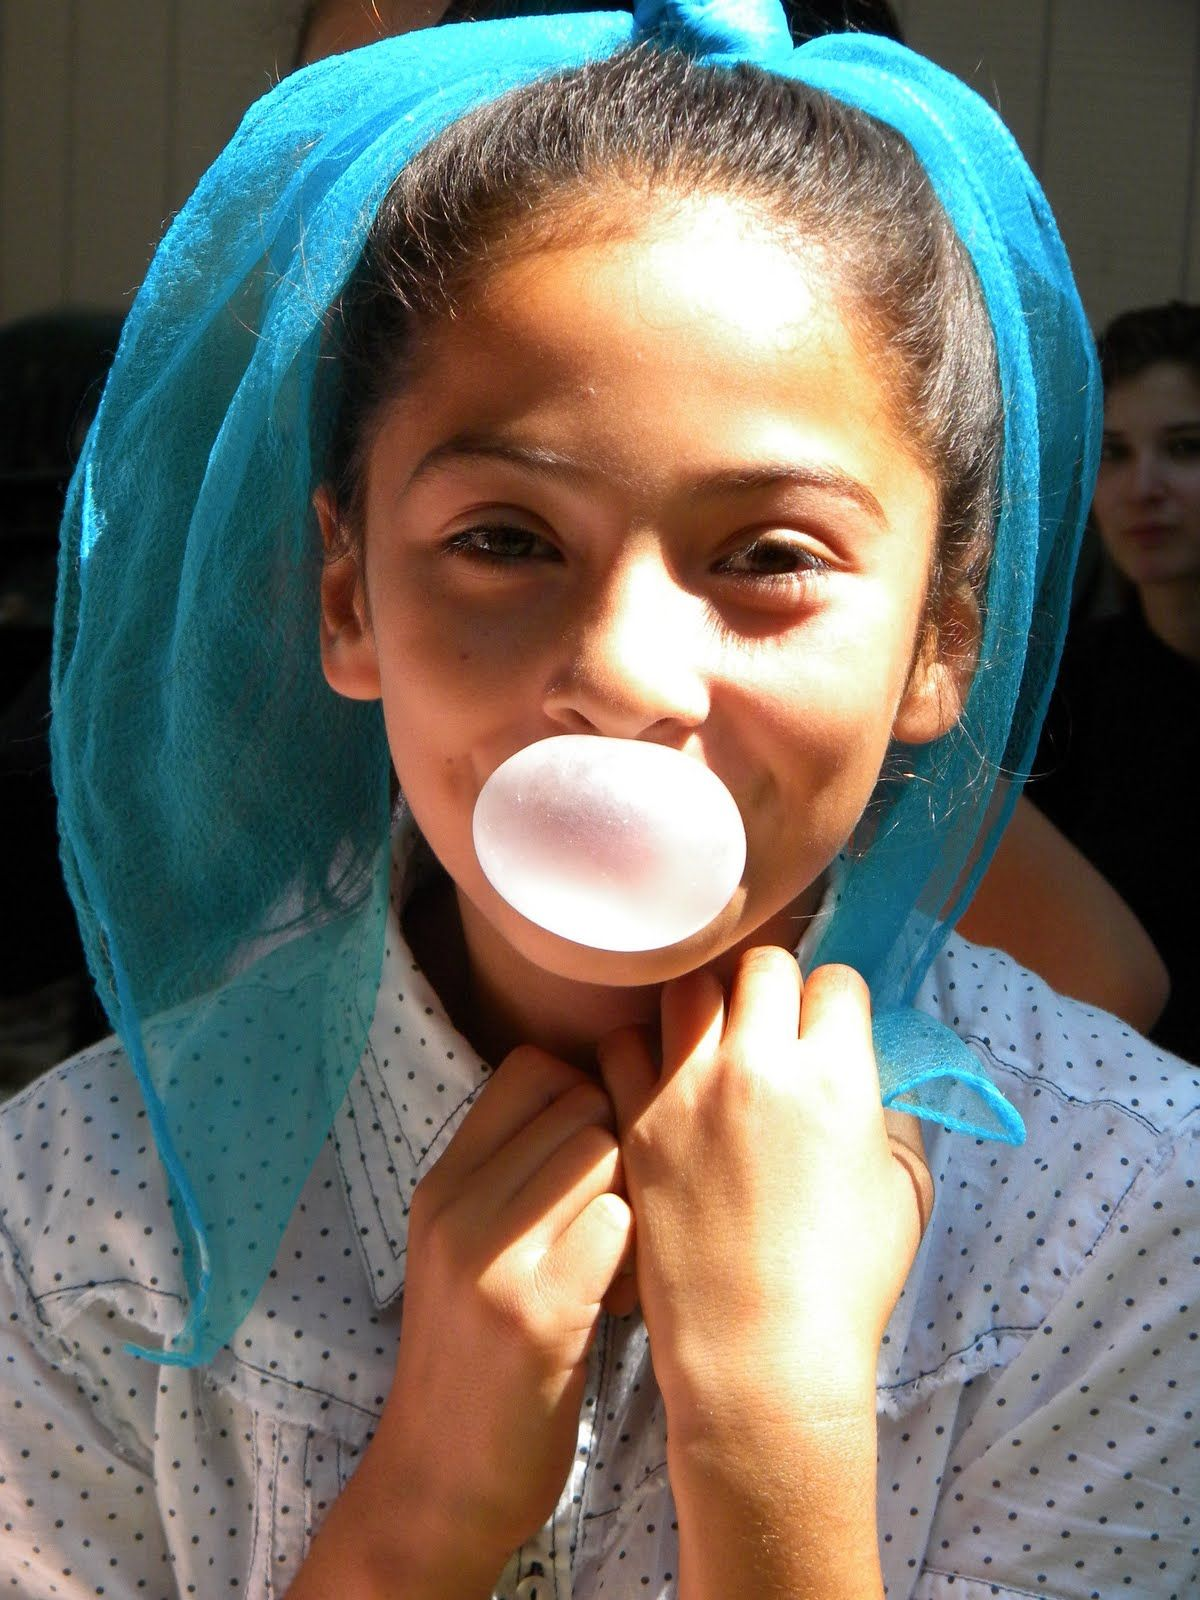 Bubble Blowing Contests-My uncle taught us kids to blow a bubble inside a  bubble